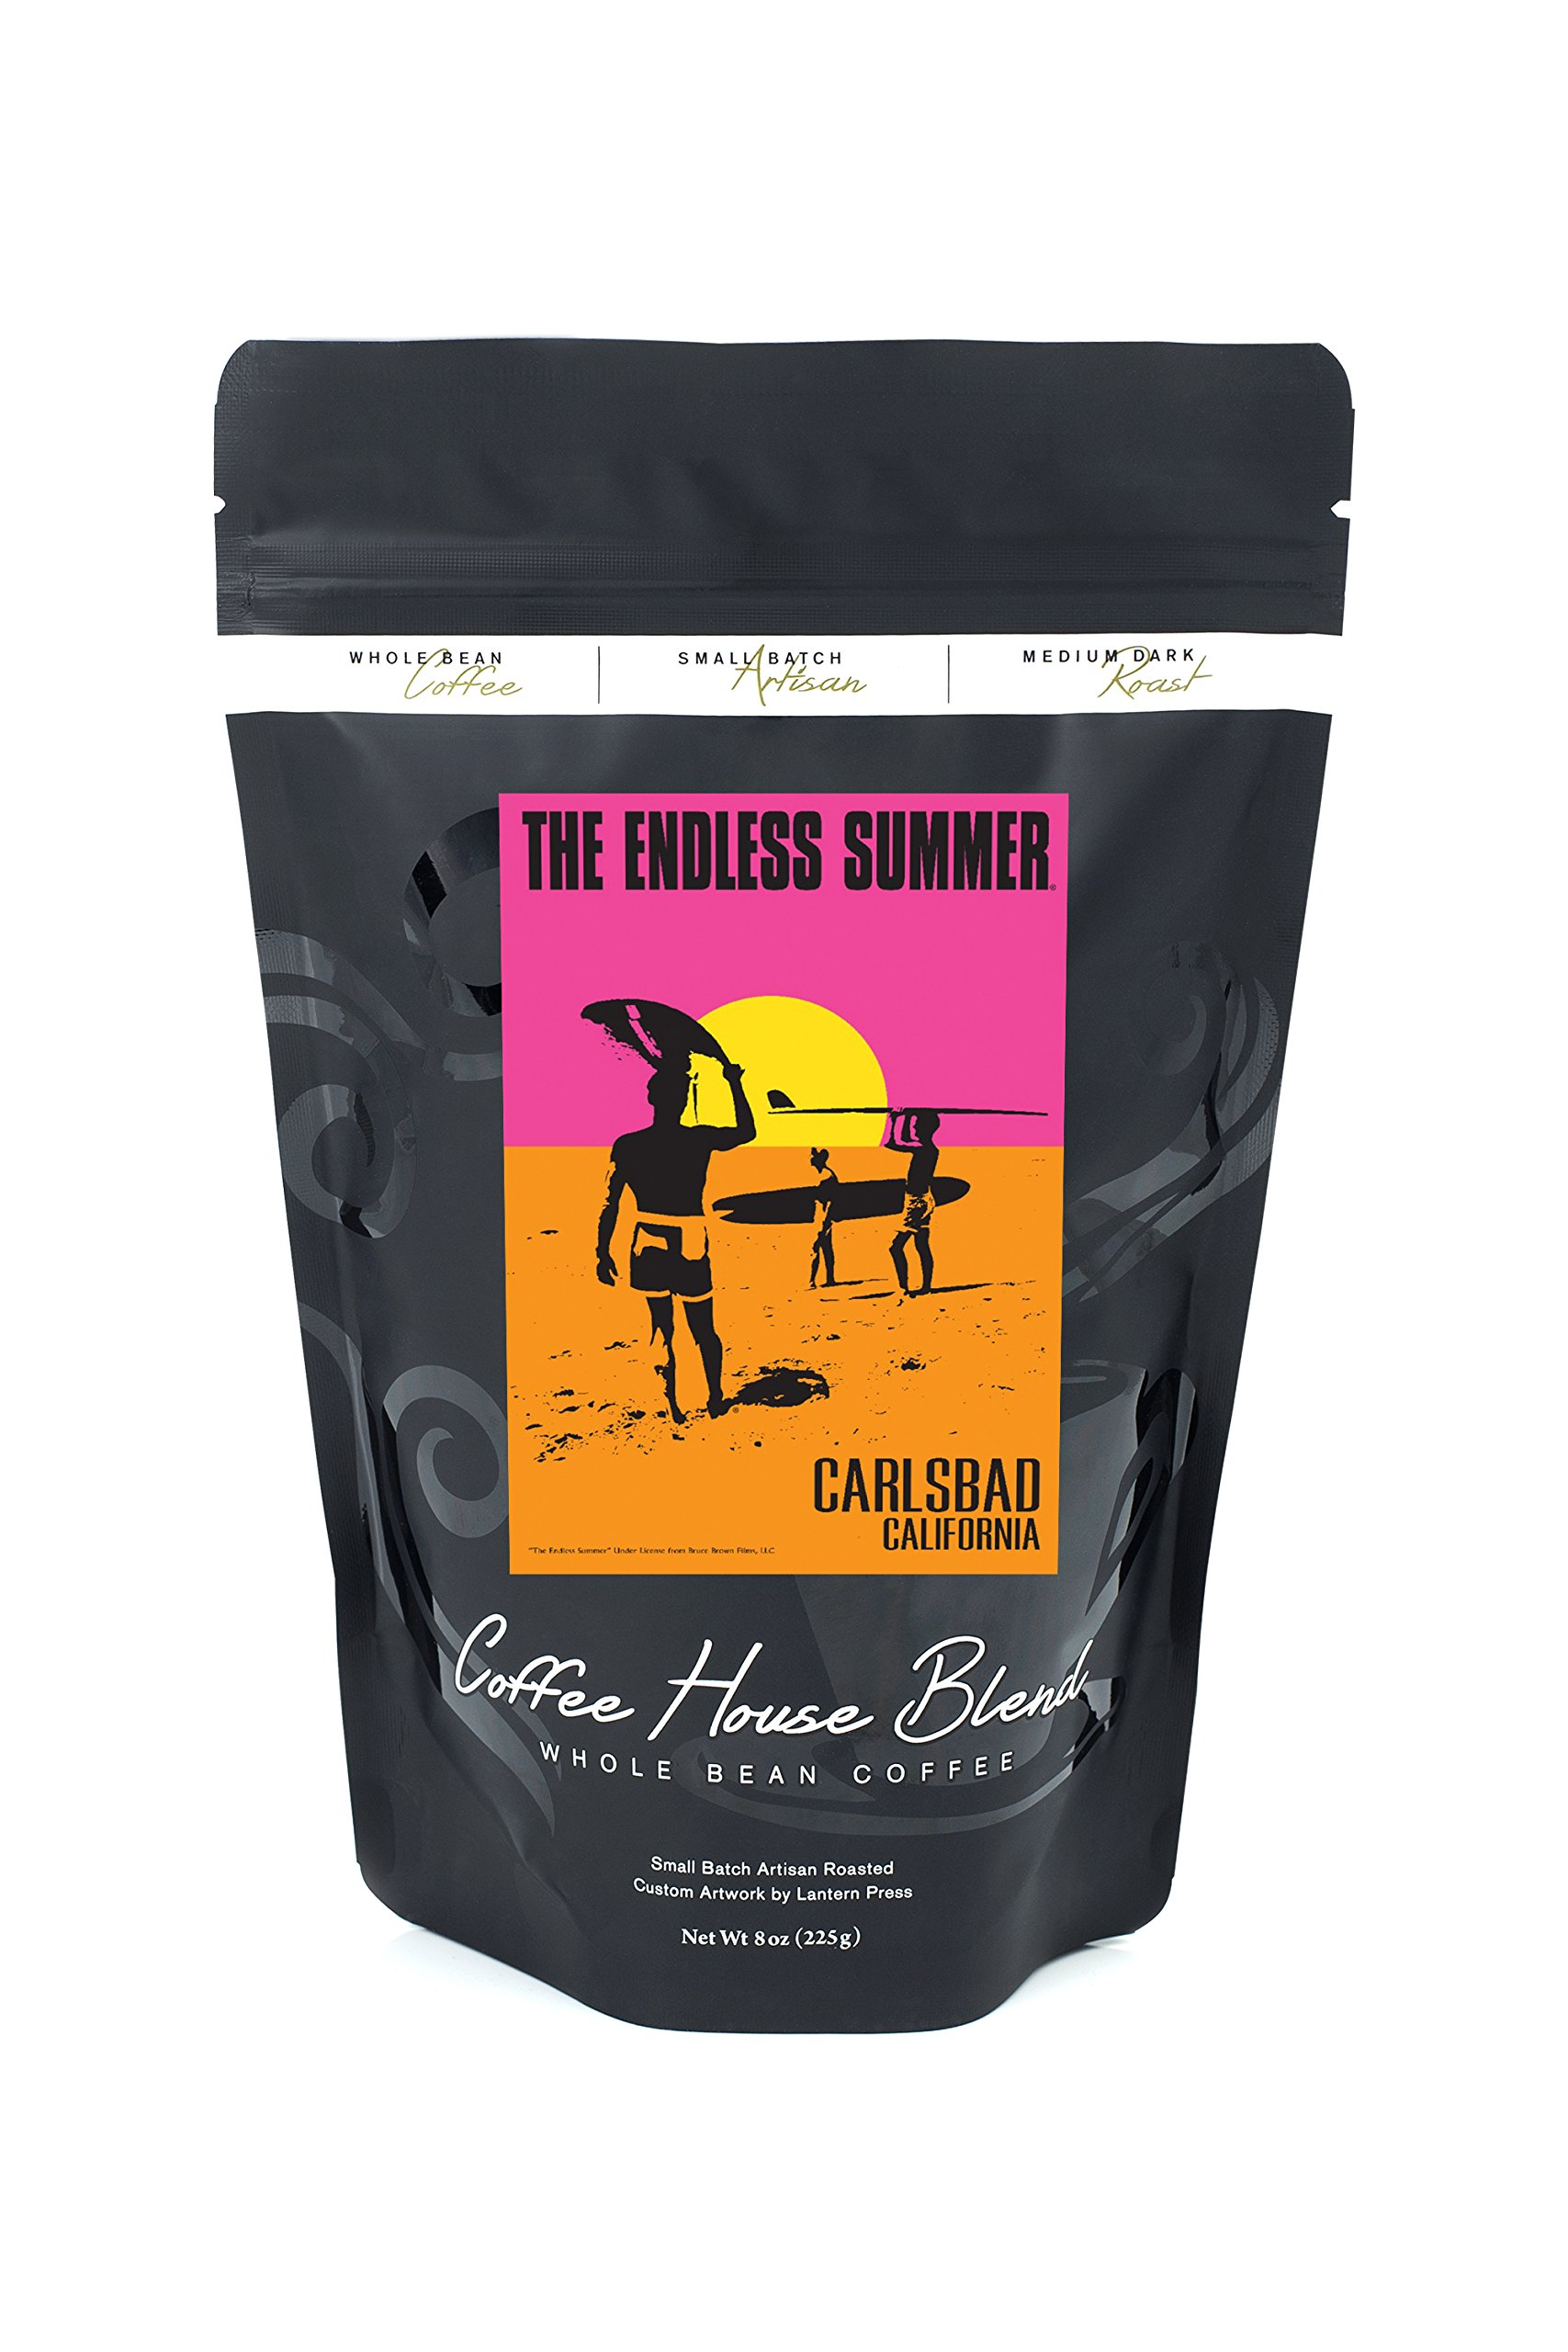 Carlsbad, California - The Endless Summer - Original Movie Poster (8oz Whole Bean Small Batch Artisan Coffee - Bold & Strong Medium Dark Roast w/ Artwork)